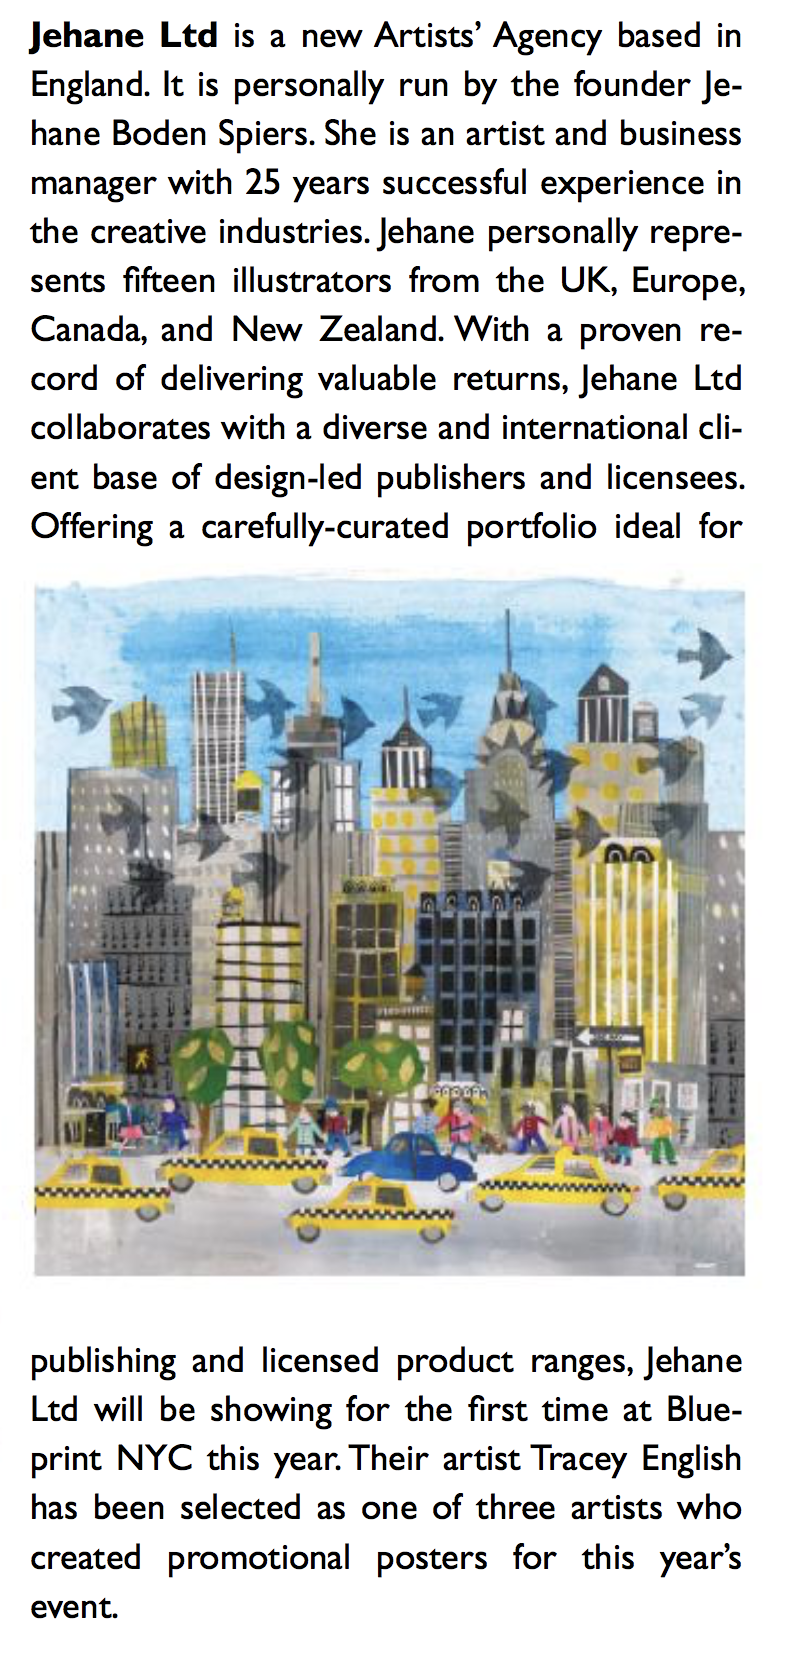 """THANKS TO TOTAL LICENSING - Thanks to Total Licensing for their extensive feature on Blueprint NYC in their recent summer issue""""Jehane Ltd is a new Artists' Agency with a proven record for delivering valuable returns…"""""""